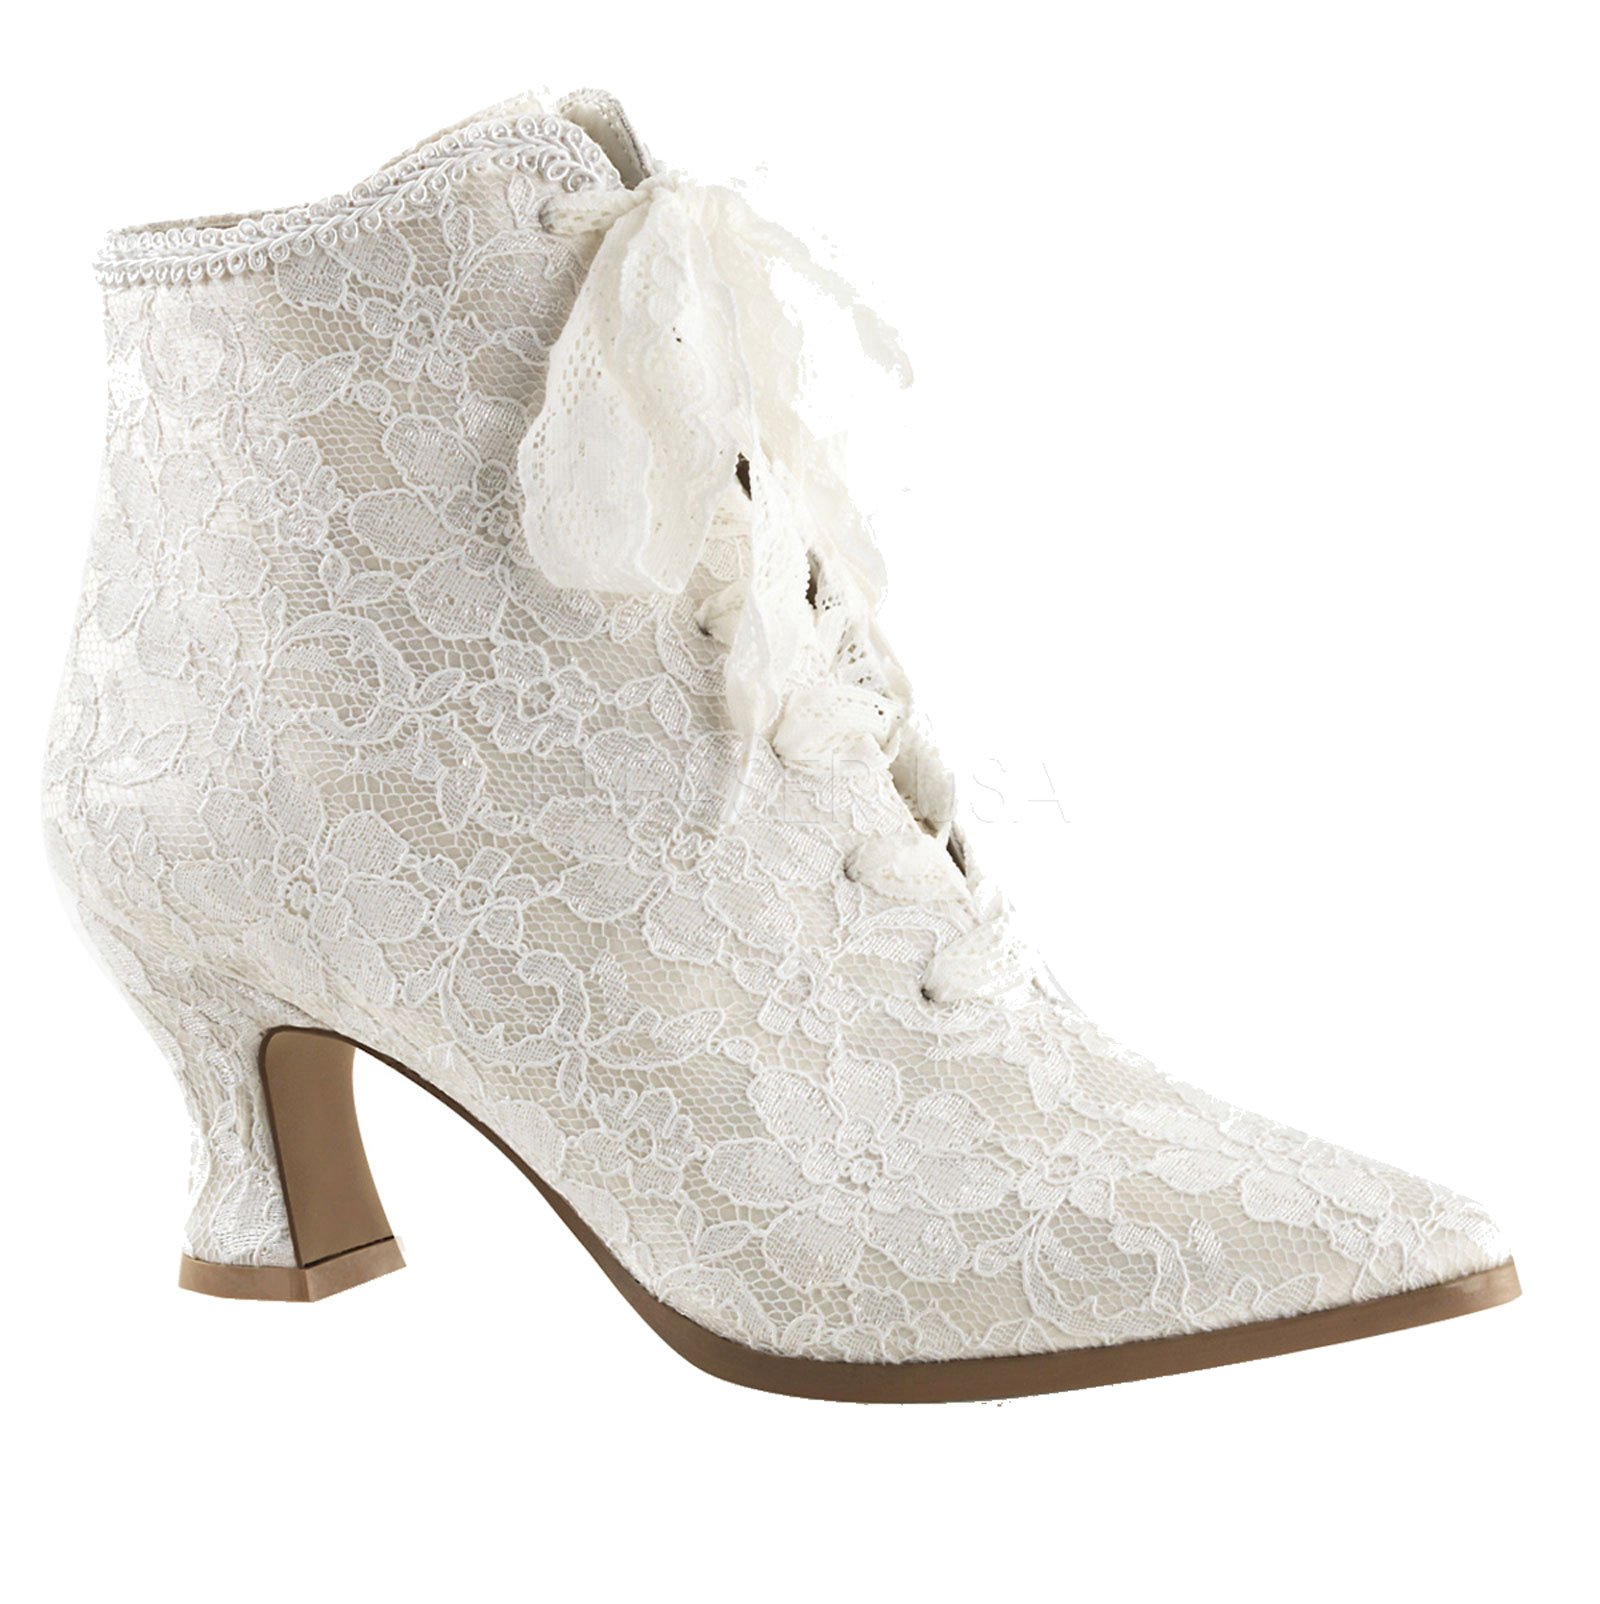 Endless Road 30 (9, Ivory) Ivory Wedding Boots